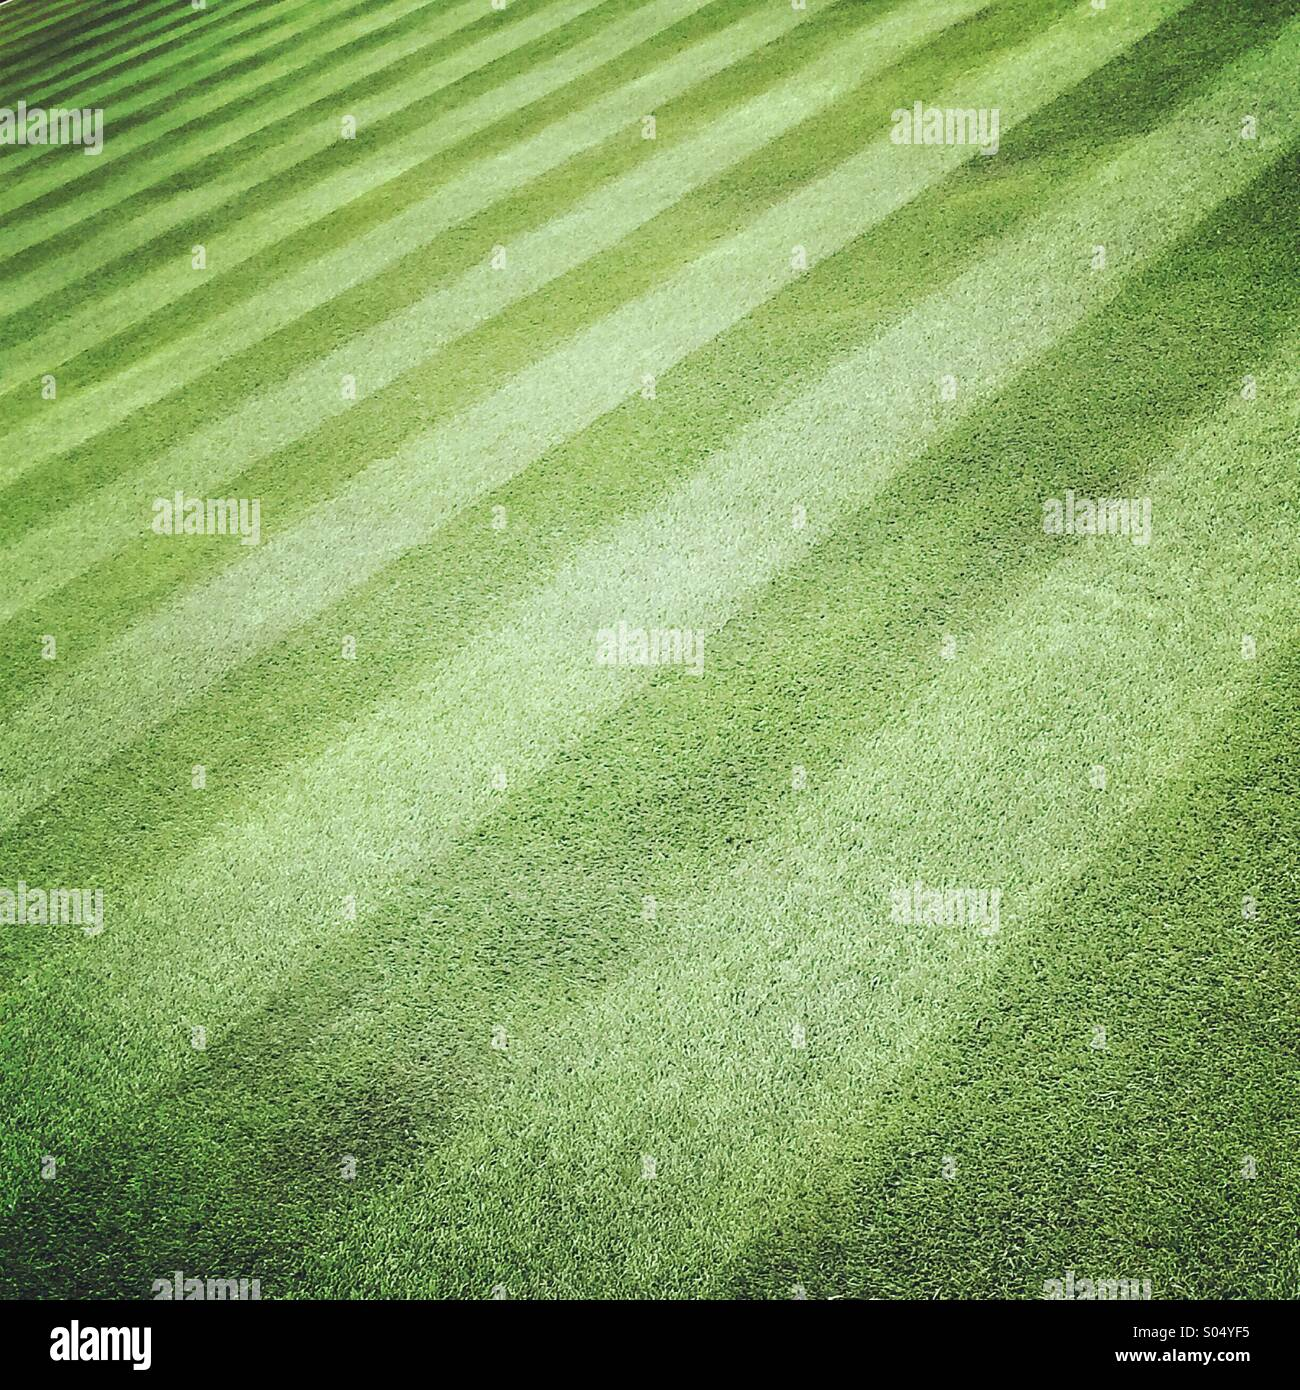 A perfect grass lawn - Stock Image